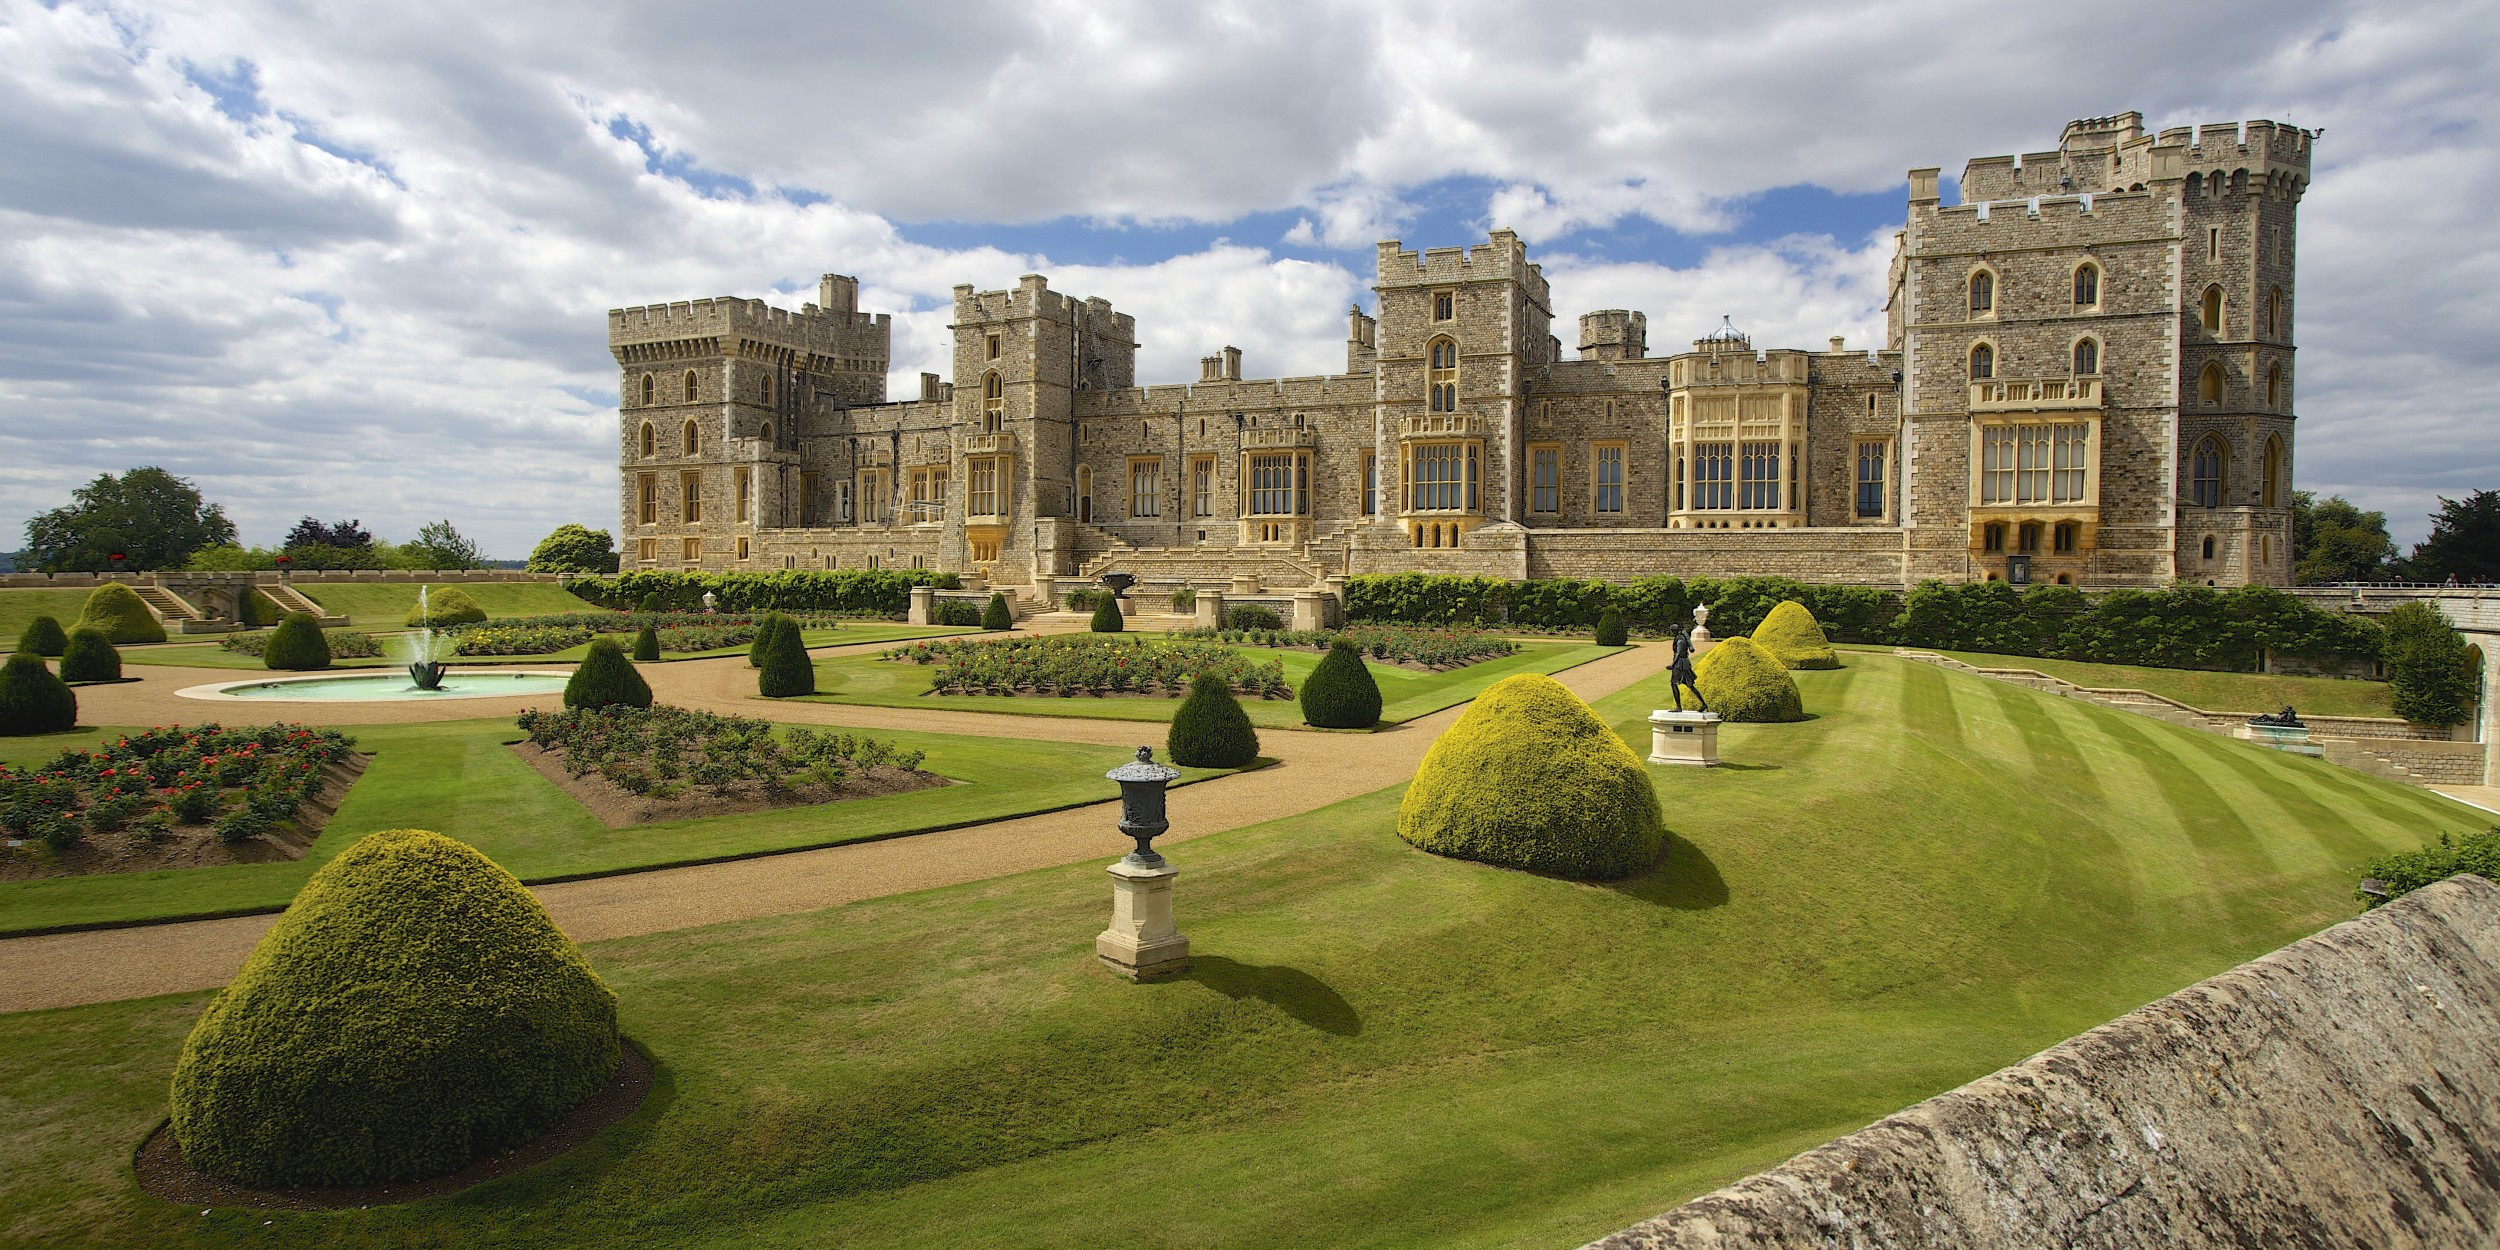 windsor castle Get directions, maps, and traffic for windsor castle, pa check flight prices and hotel availability for your visit.